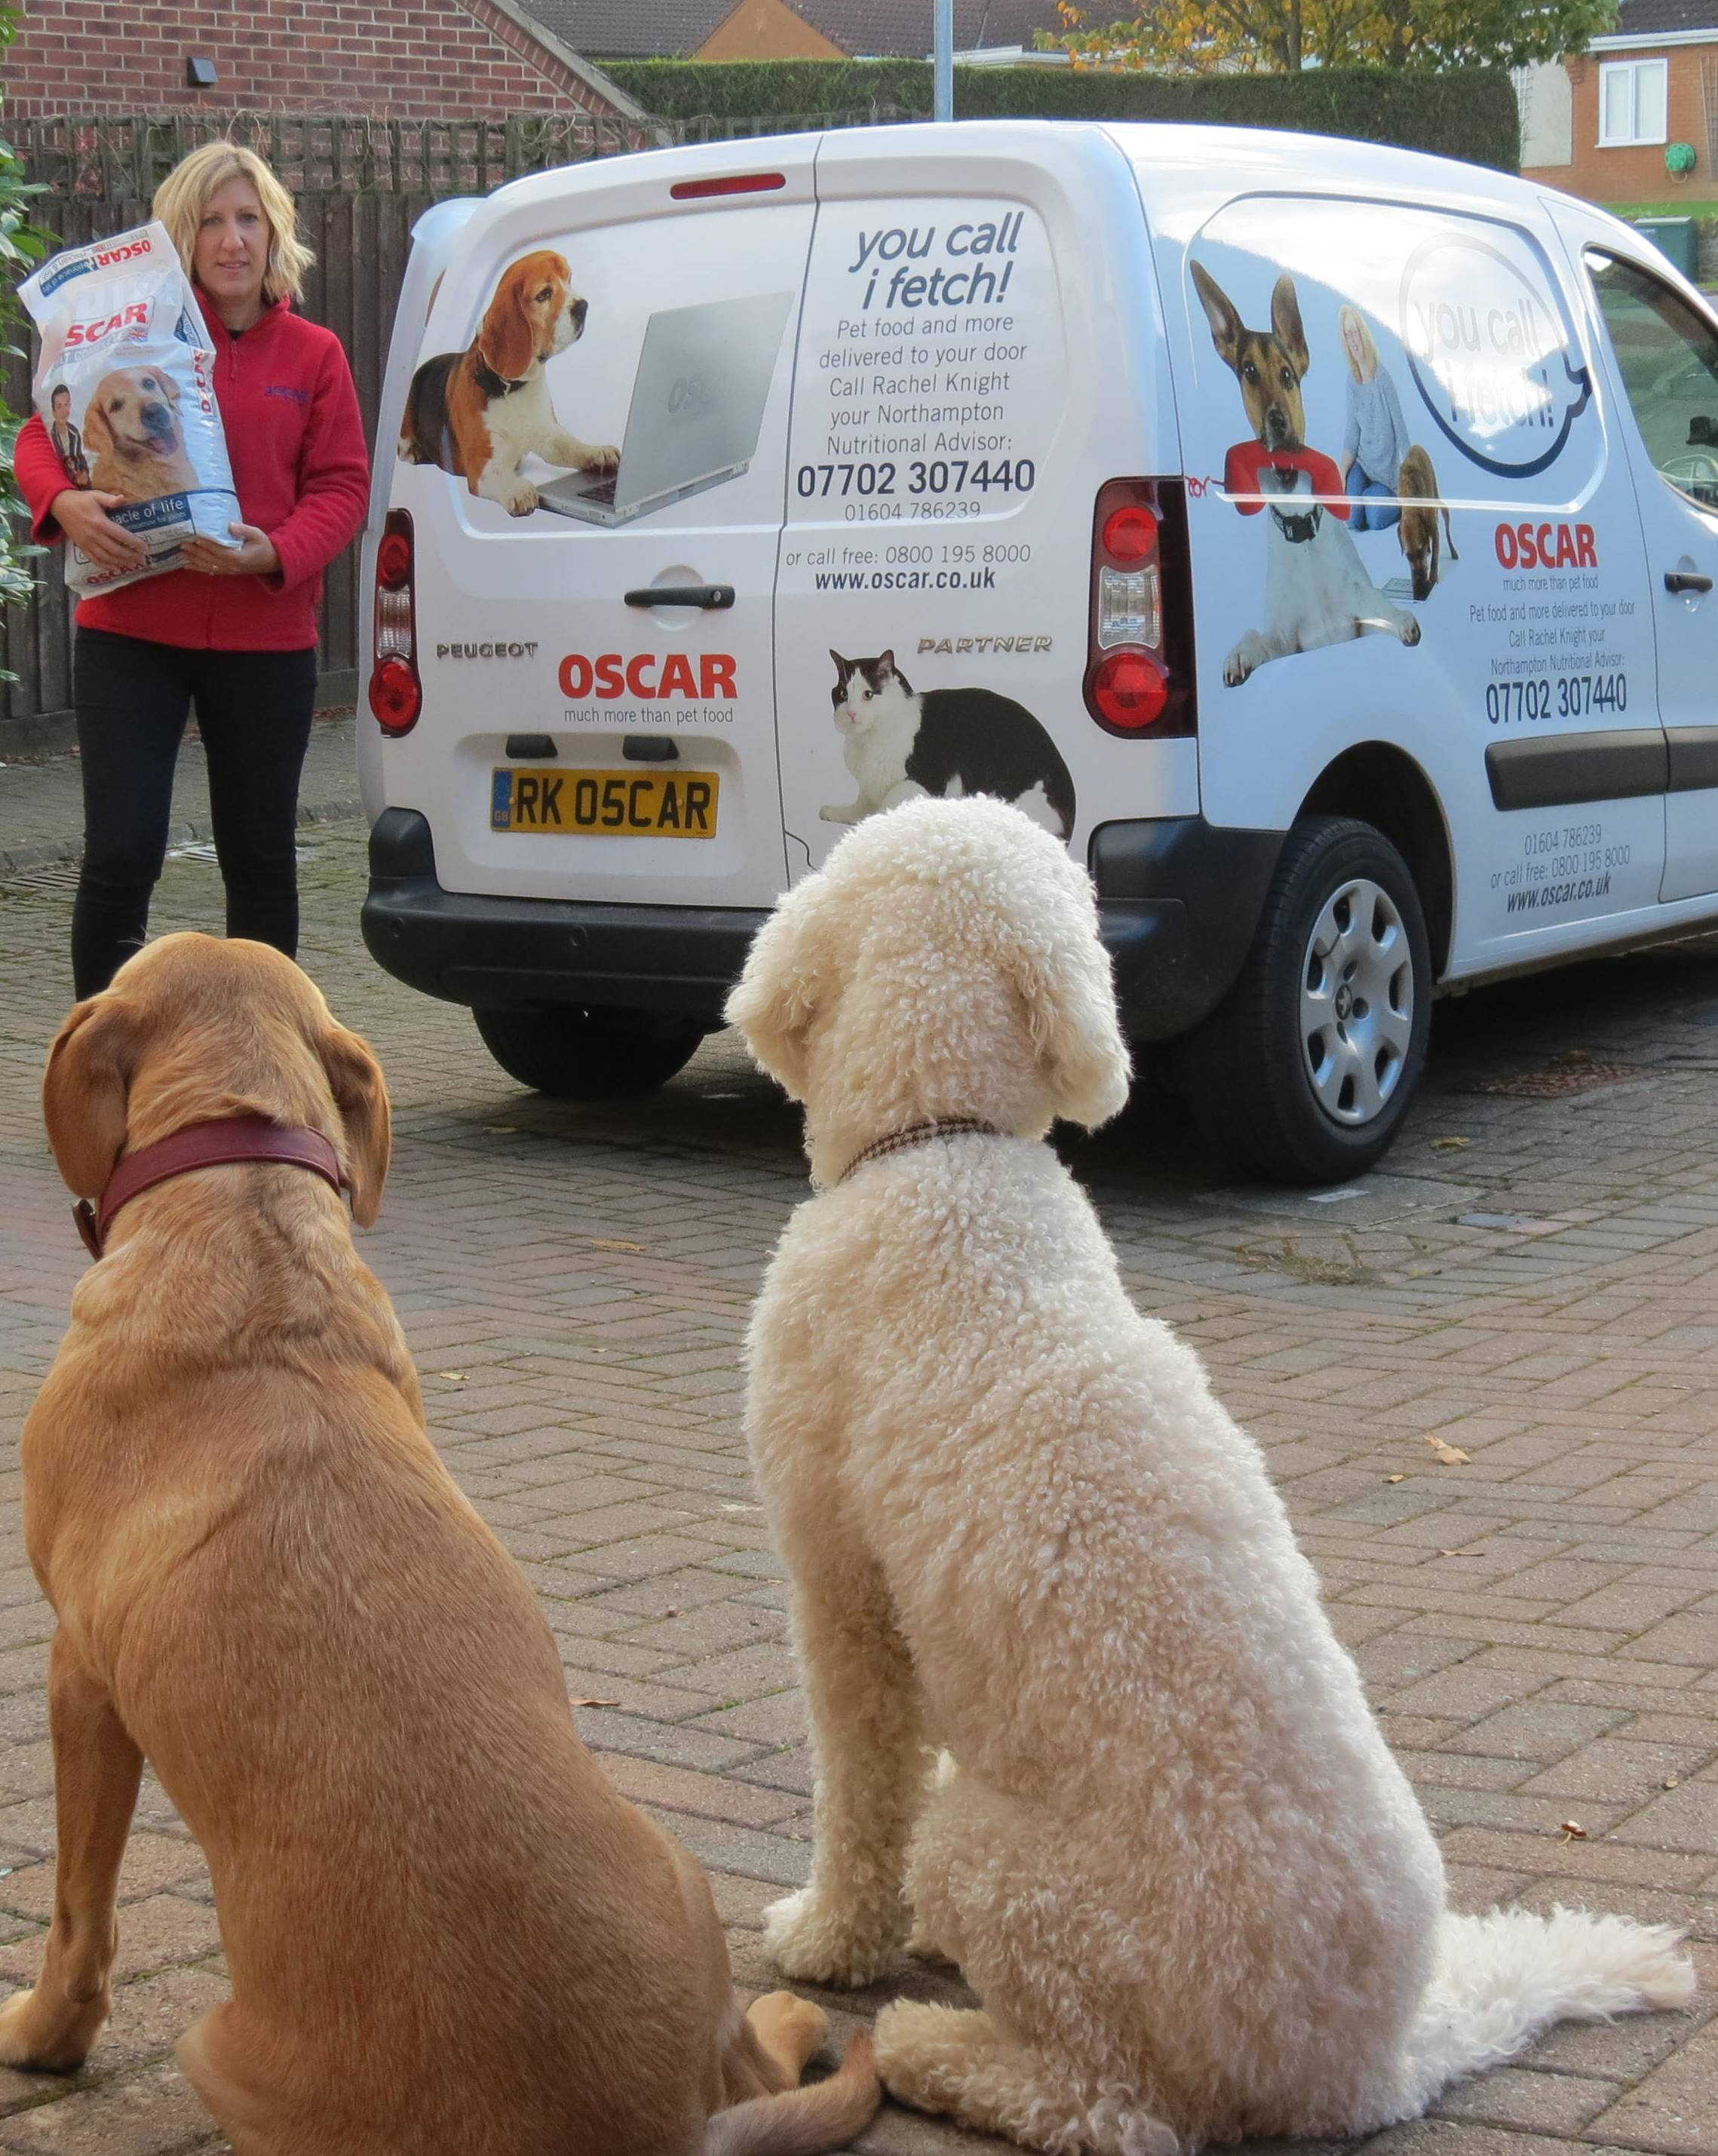 The demand for safe home-delivery of quality pet food increases